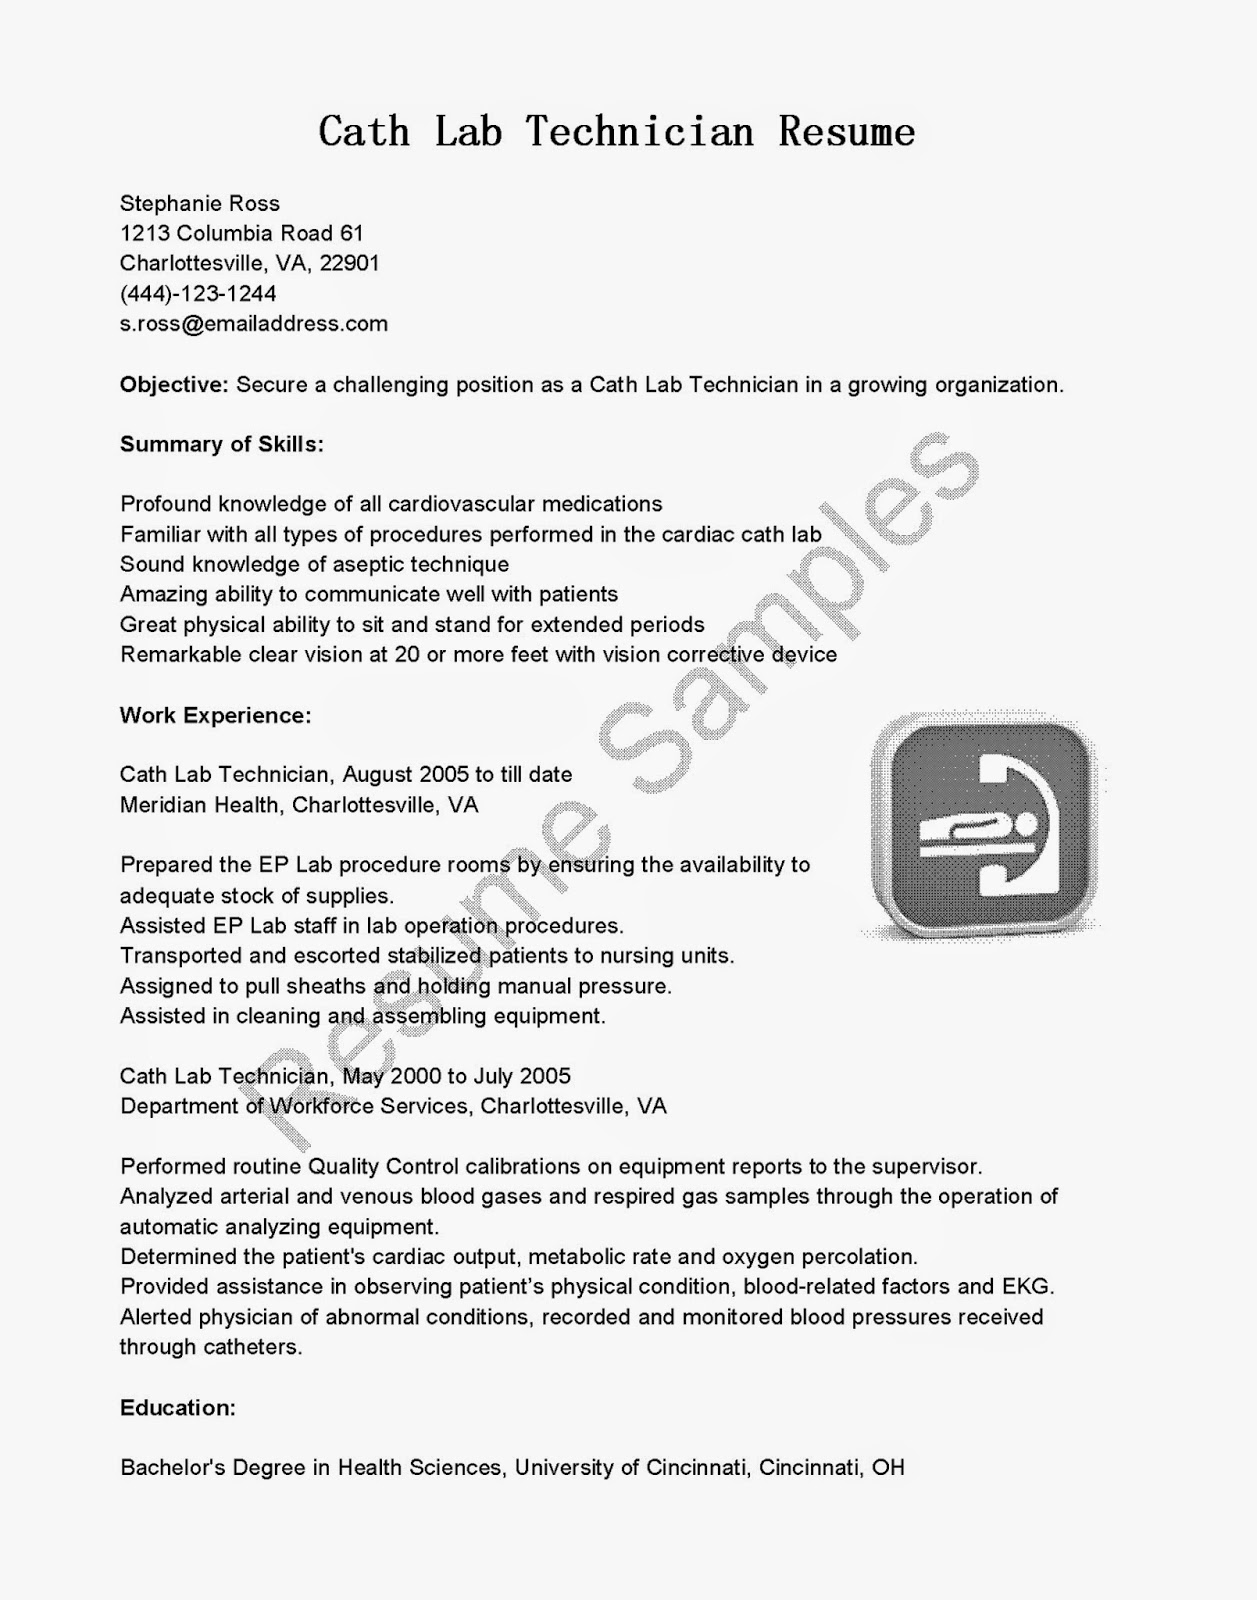 resume samples  cath lab technician resume sample